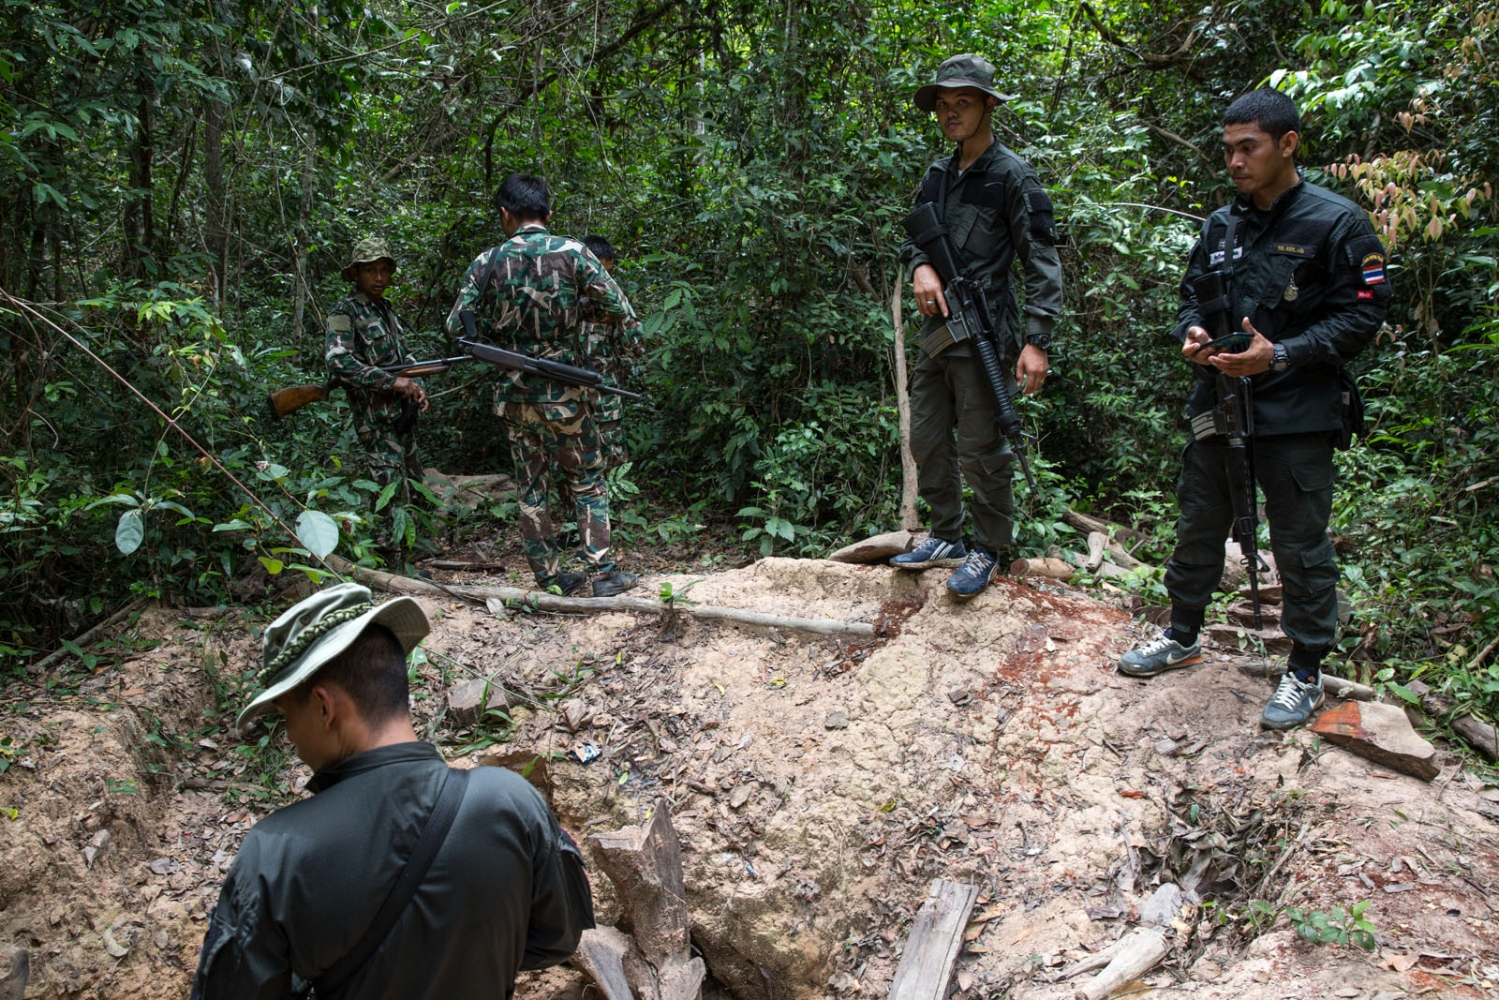 The site of a felled rosewood tree with even its roots dug up and removed. This activity only finished a few days before the rangers found the location. Ta Praya National Park, Sa Kaew Province - June 2018